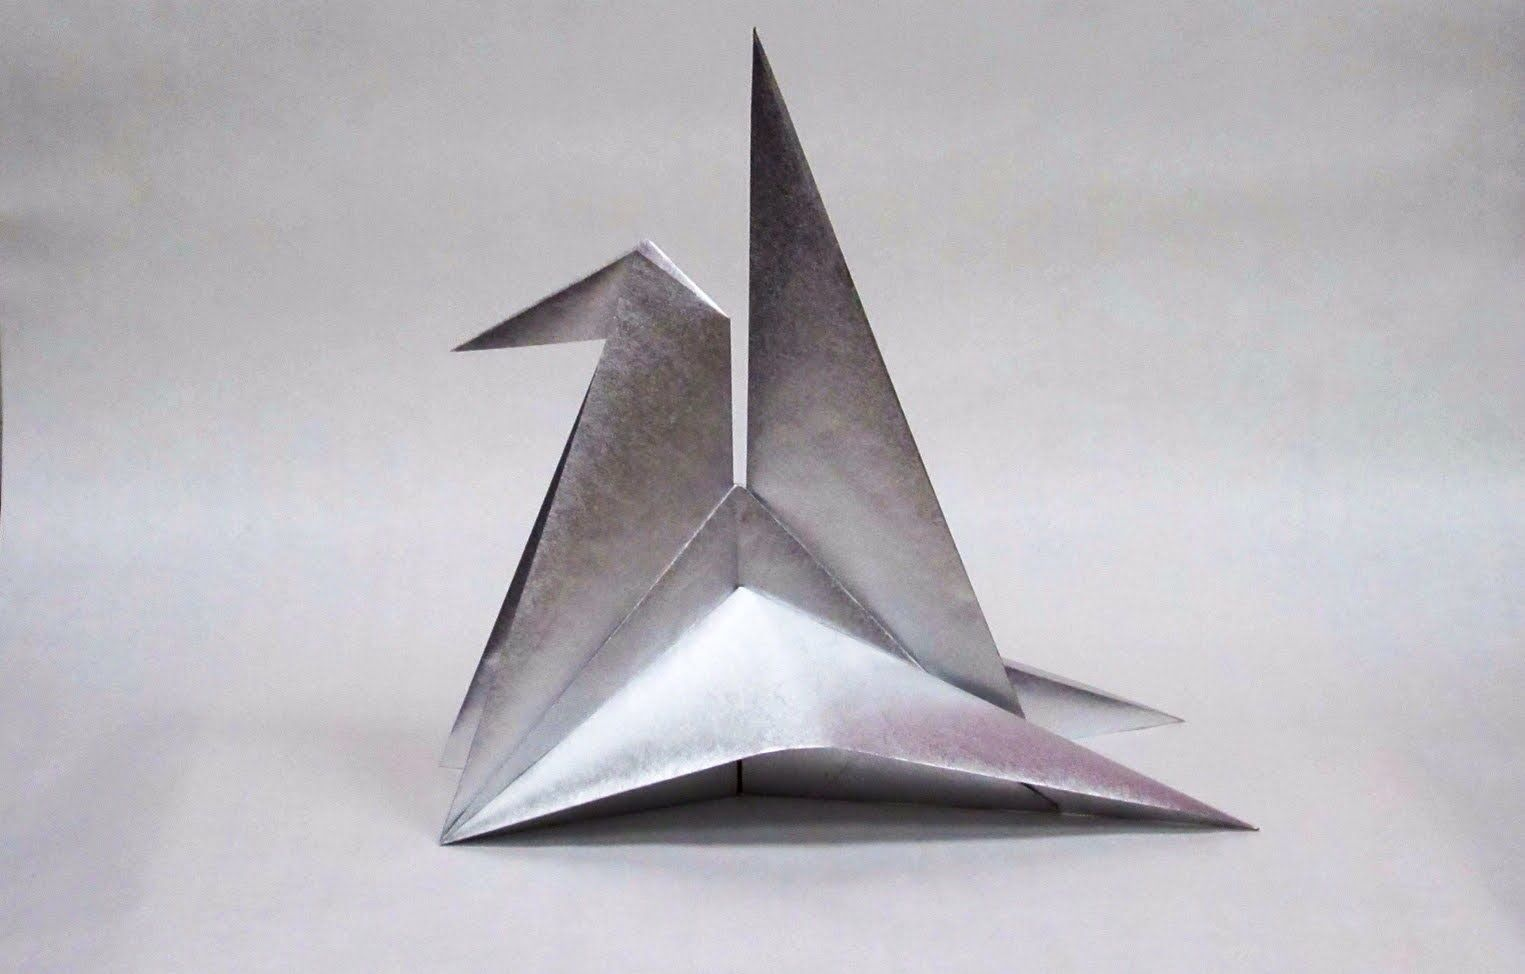 Crane Stand by David Wires / unfolding and refolding demo